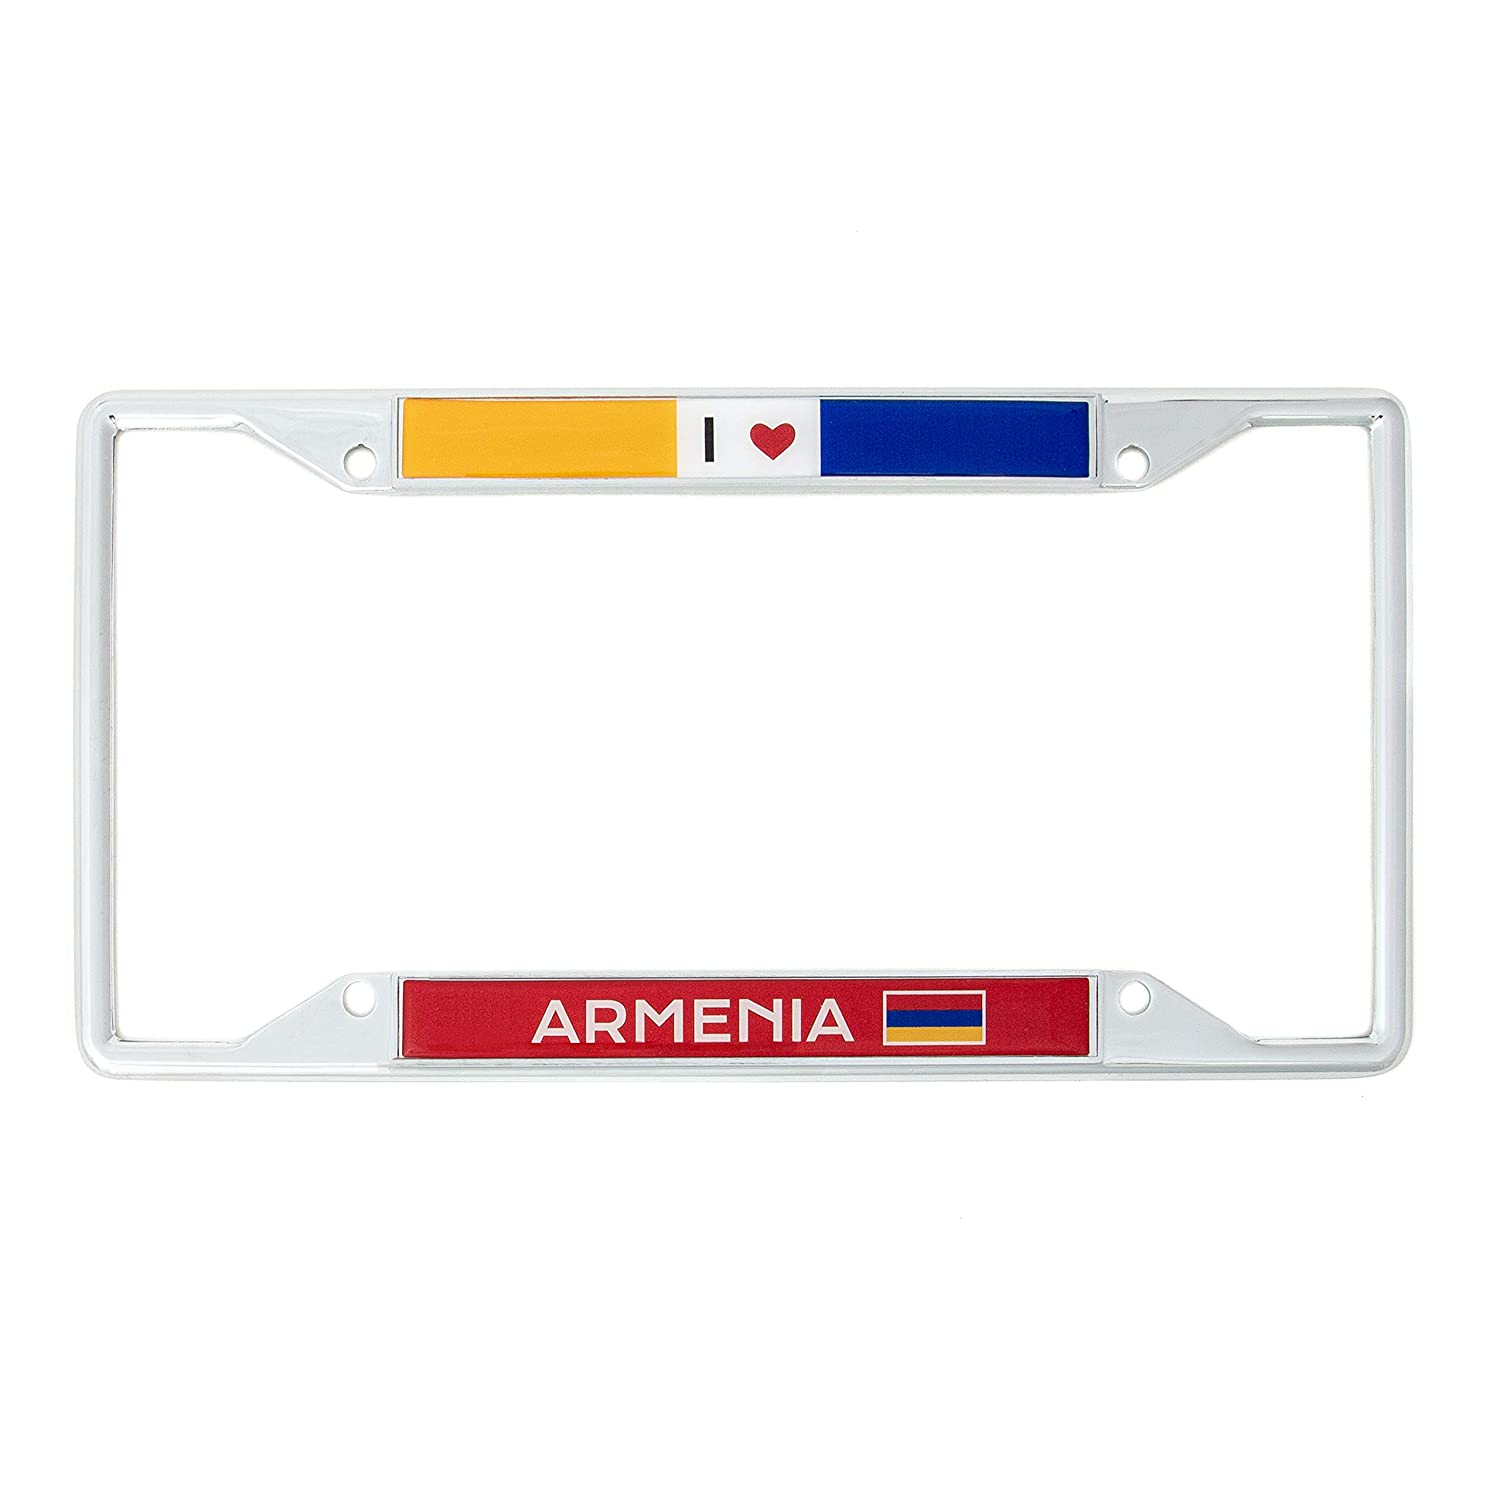 Desert Cactus Country of Armenia I Heart Love License Plate Frame for Front Back of Car Vehicle Truck Armenians